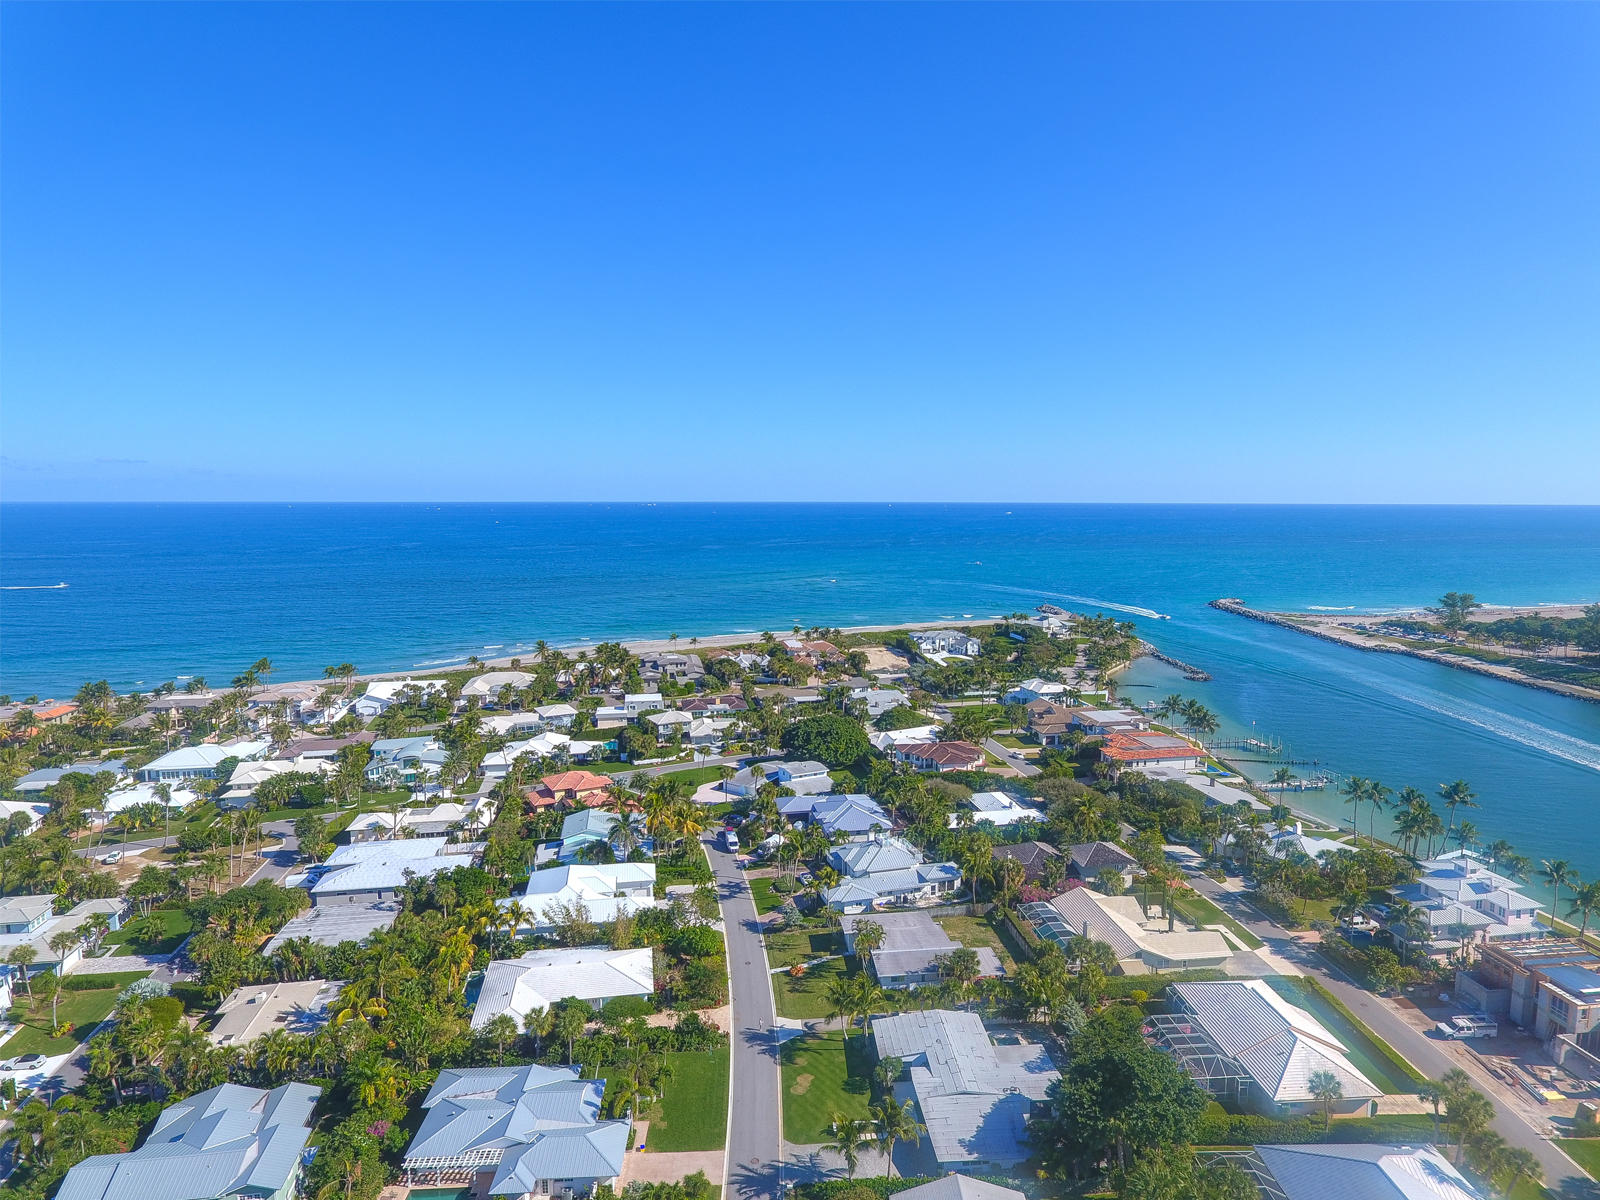 Beautiful beachside community on the South end of Jupiter Island in Jupiter Inlet Colony! 2 Bedrooms, 2 Bathrooms, 1 Car Garage home with a pool! This home features high ceilings, double paned insulated windows, and roof was installed in 2015. The backyard is great for entertaining and has a lush tropical setting with an open patio that overlooks the heated pool. Great home for renovations, addition, or new construction.  Community offers beach access with stunning turquoise, clear ocean waters. This neighborhood is a playground for snorkeling, paddle boarding, fishing and more. Jupiter Inlet Colony is surrounded by the Atlantic Ocean, Intracoastal waters and Jupiter Inlet. Dogs are allowed on the beach with leash. Community is considered its own town with private police department within for the 243 home sites. JIB Club Marina with boat slips and beach club available for additional fees and/or membership required.